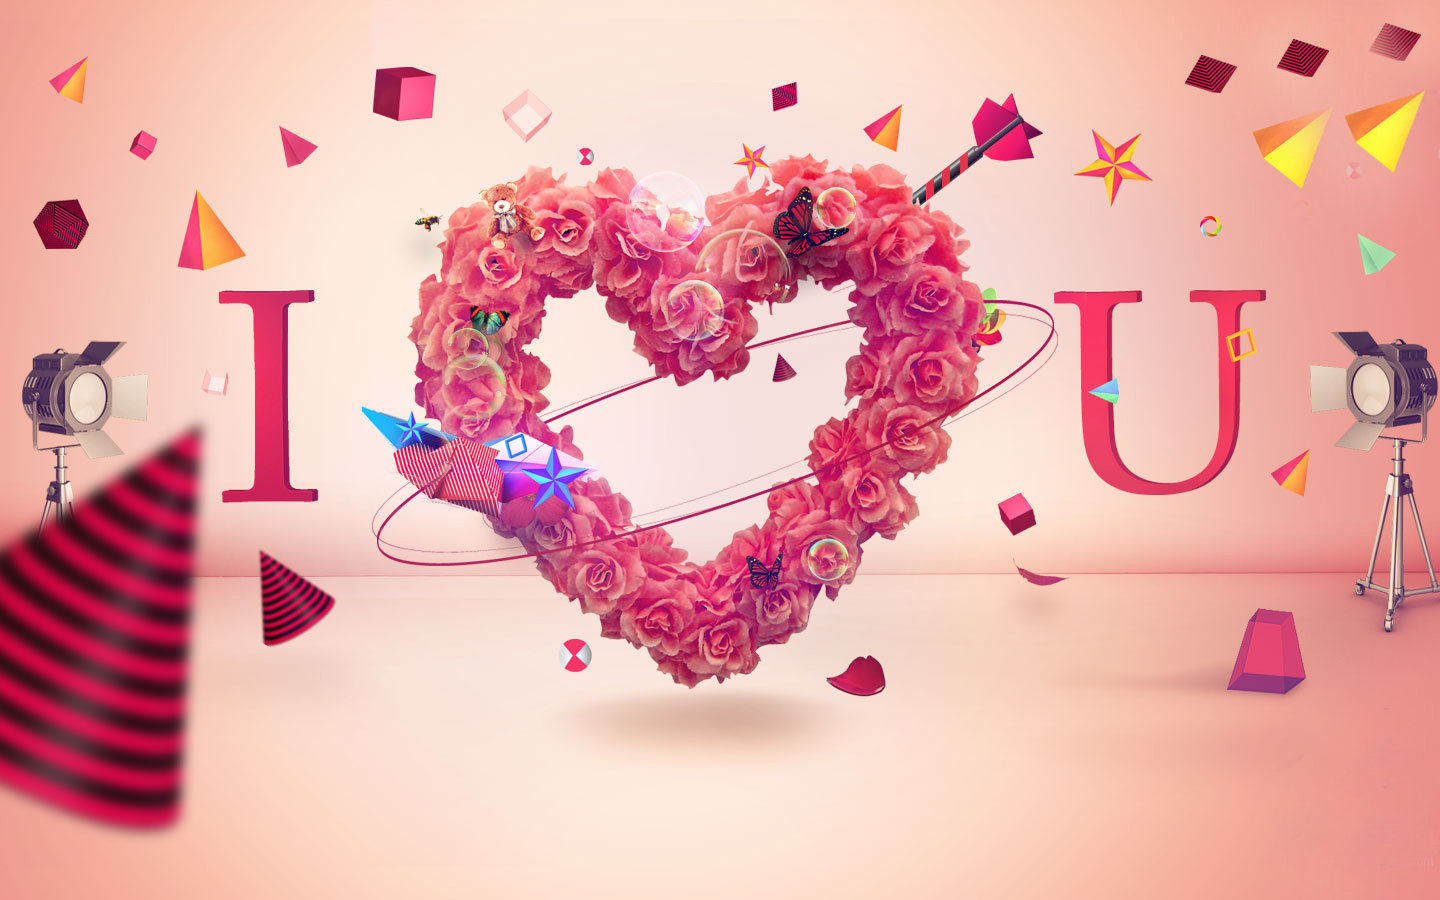 Free Download You Wallpapers Love 3d Wallpapers Love 3d Vector